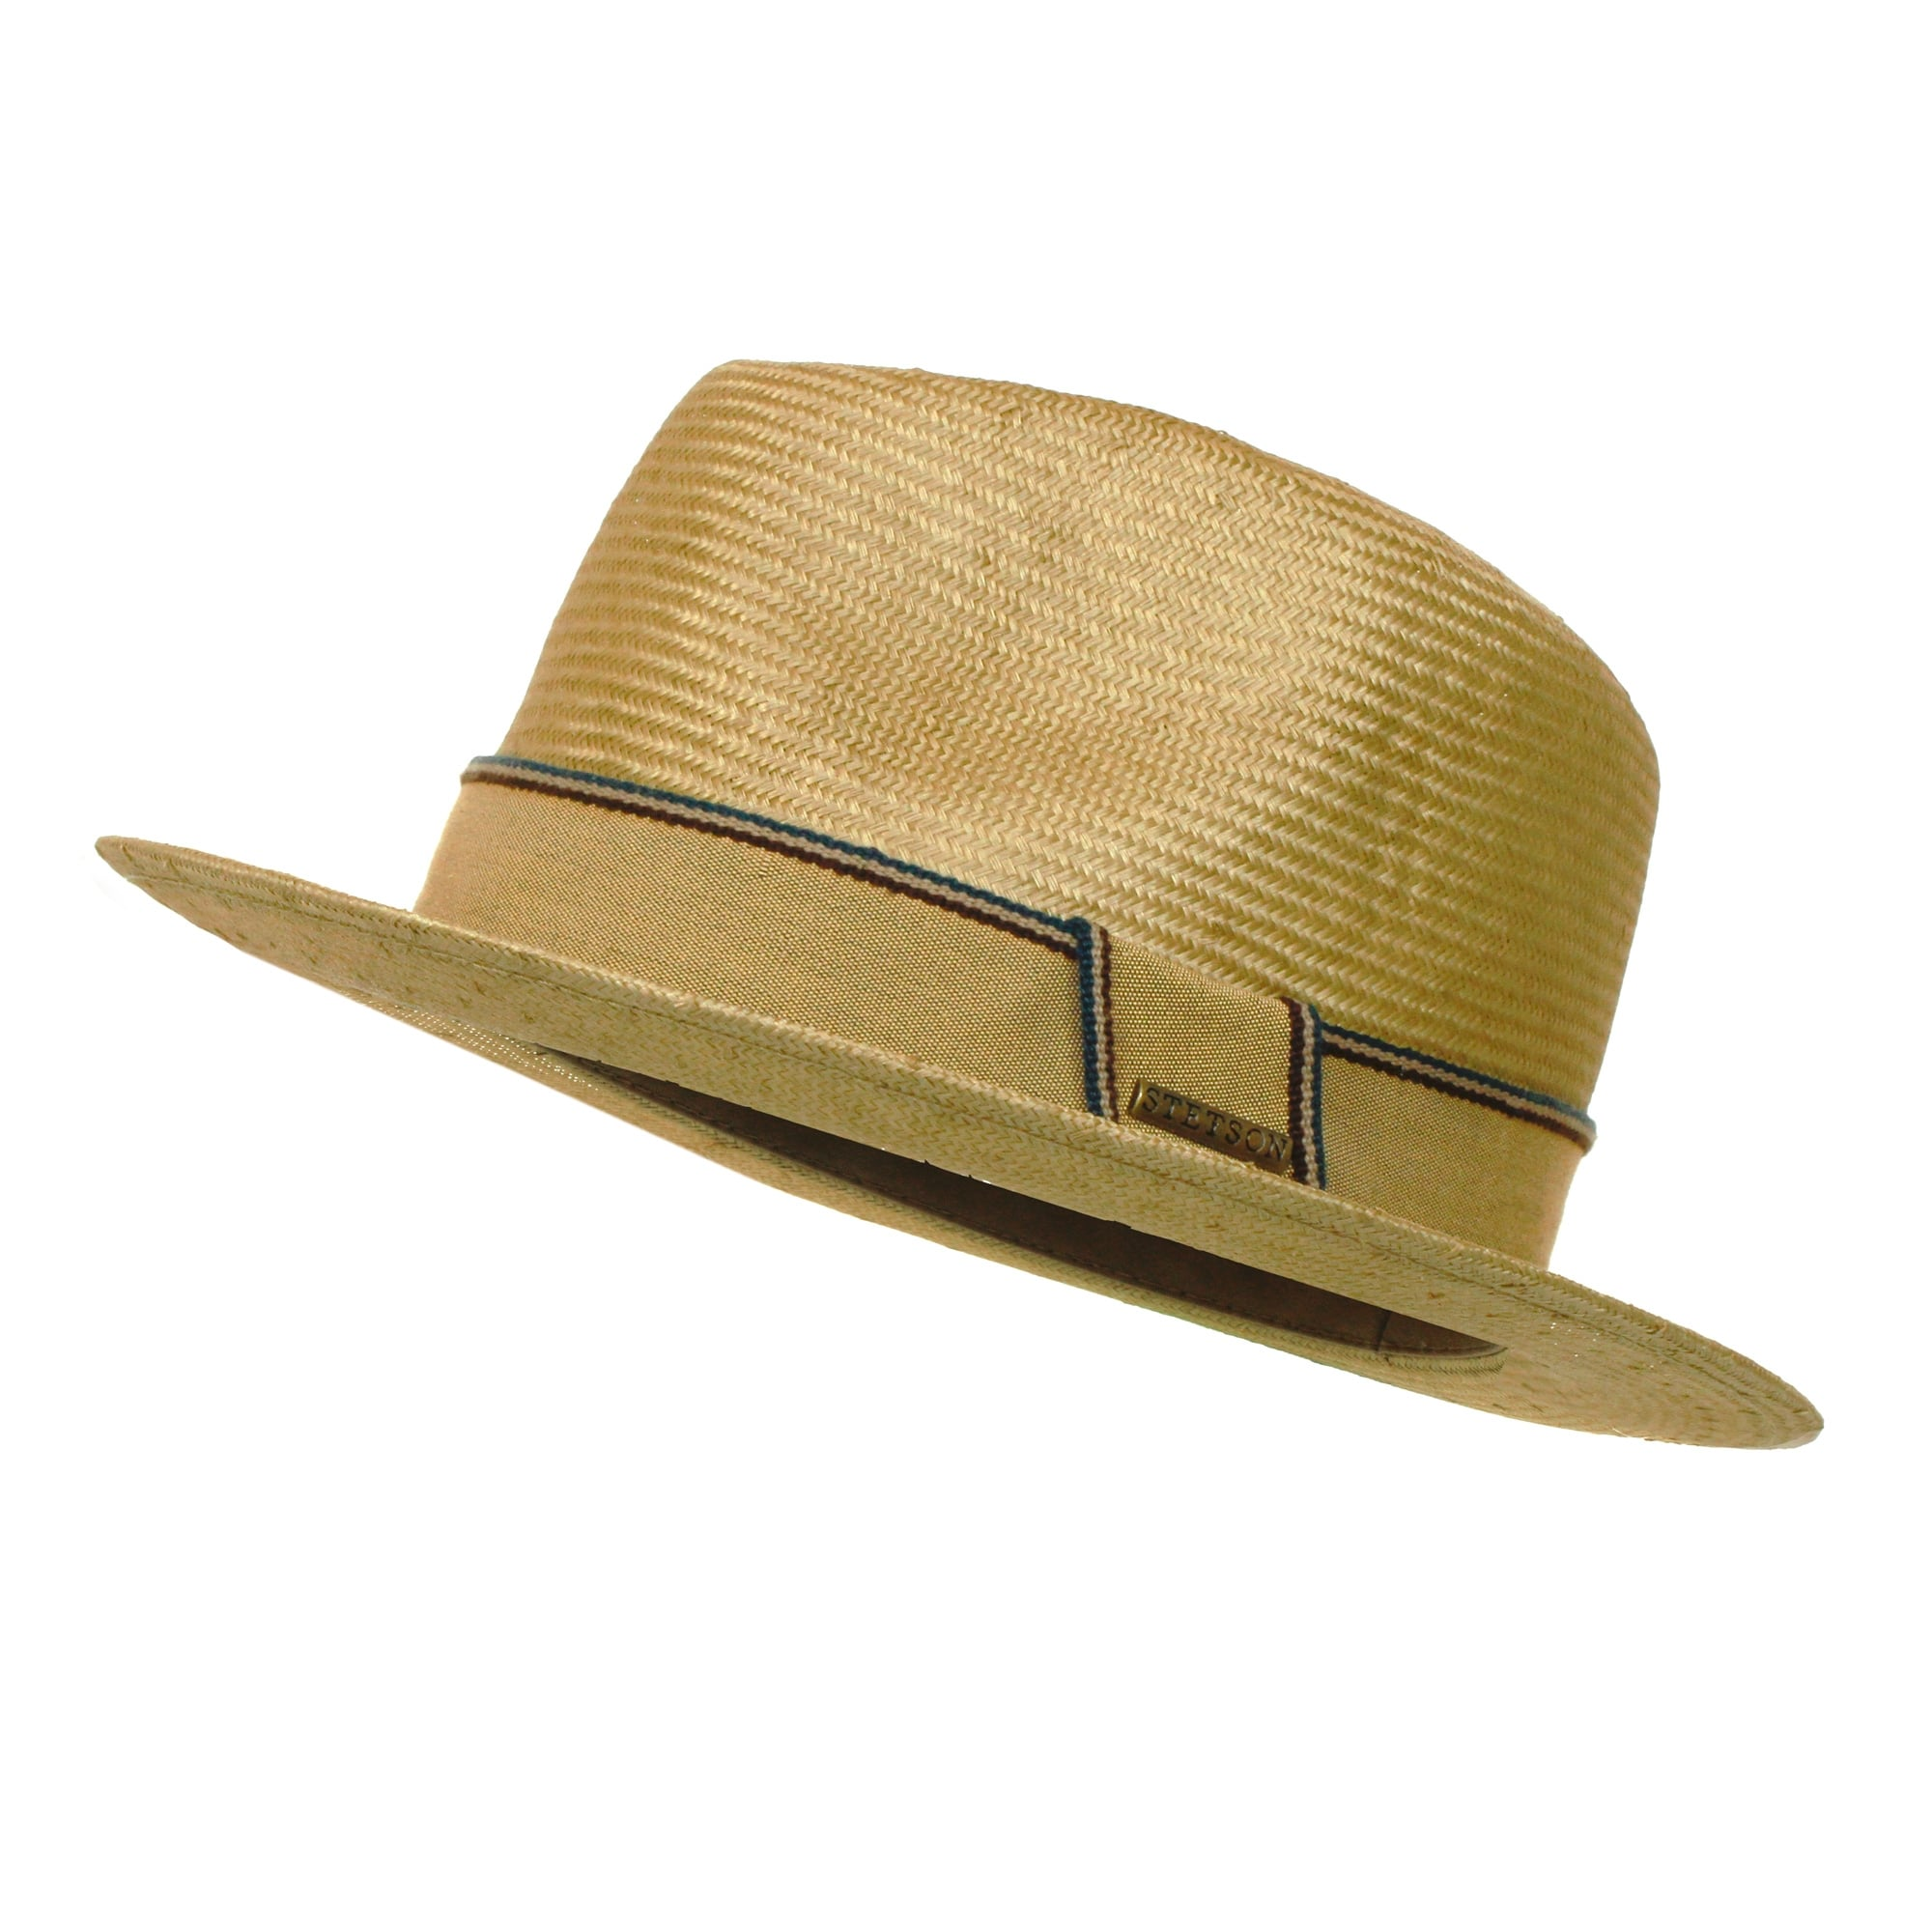 Natural Straw Trilby Hat 6678d19ad8a